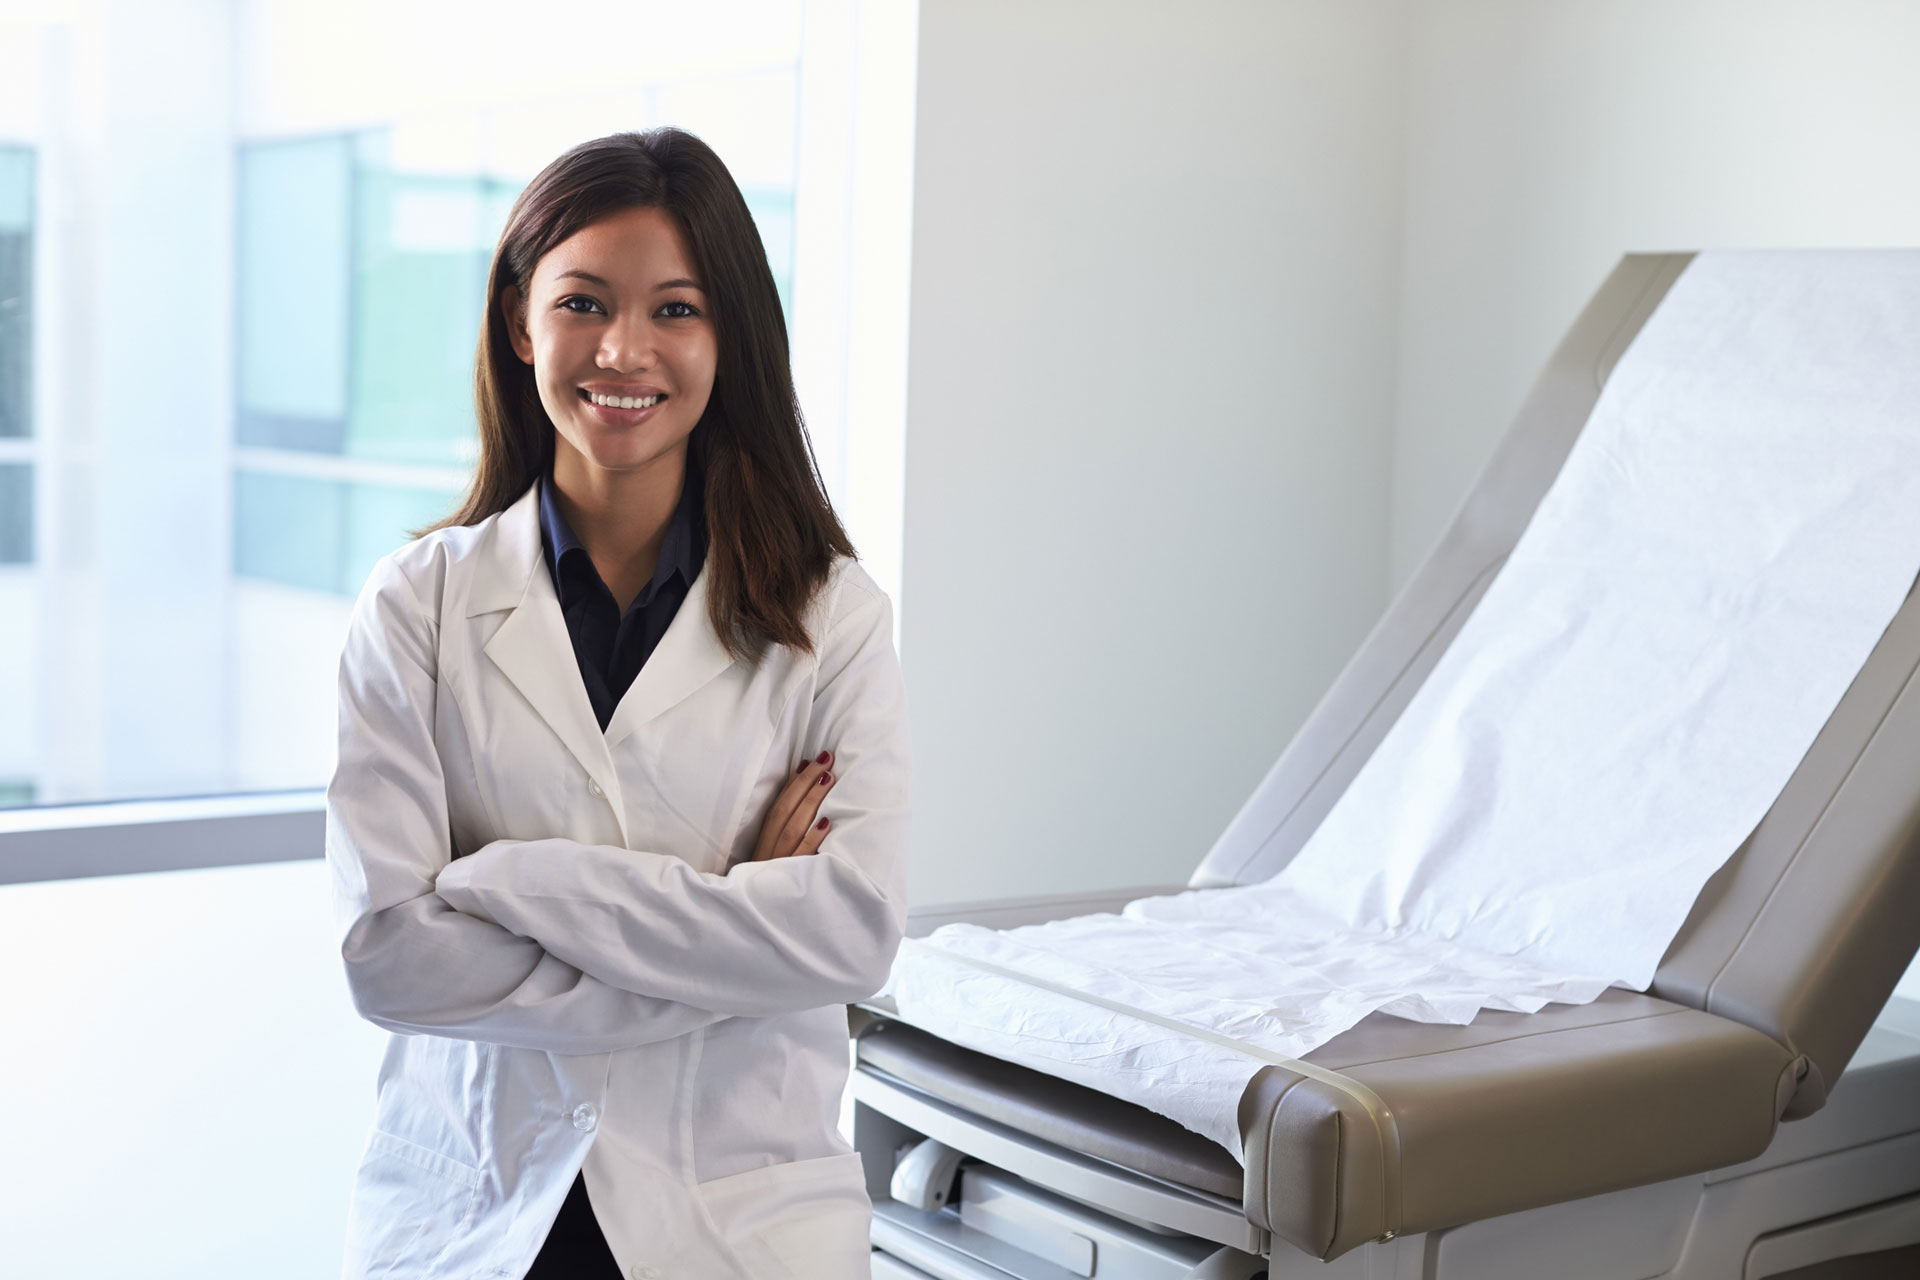 Portrait Of Female Family Nurse Pracitioner Wearing White Coat In Exam Room